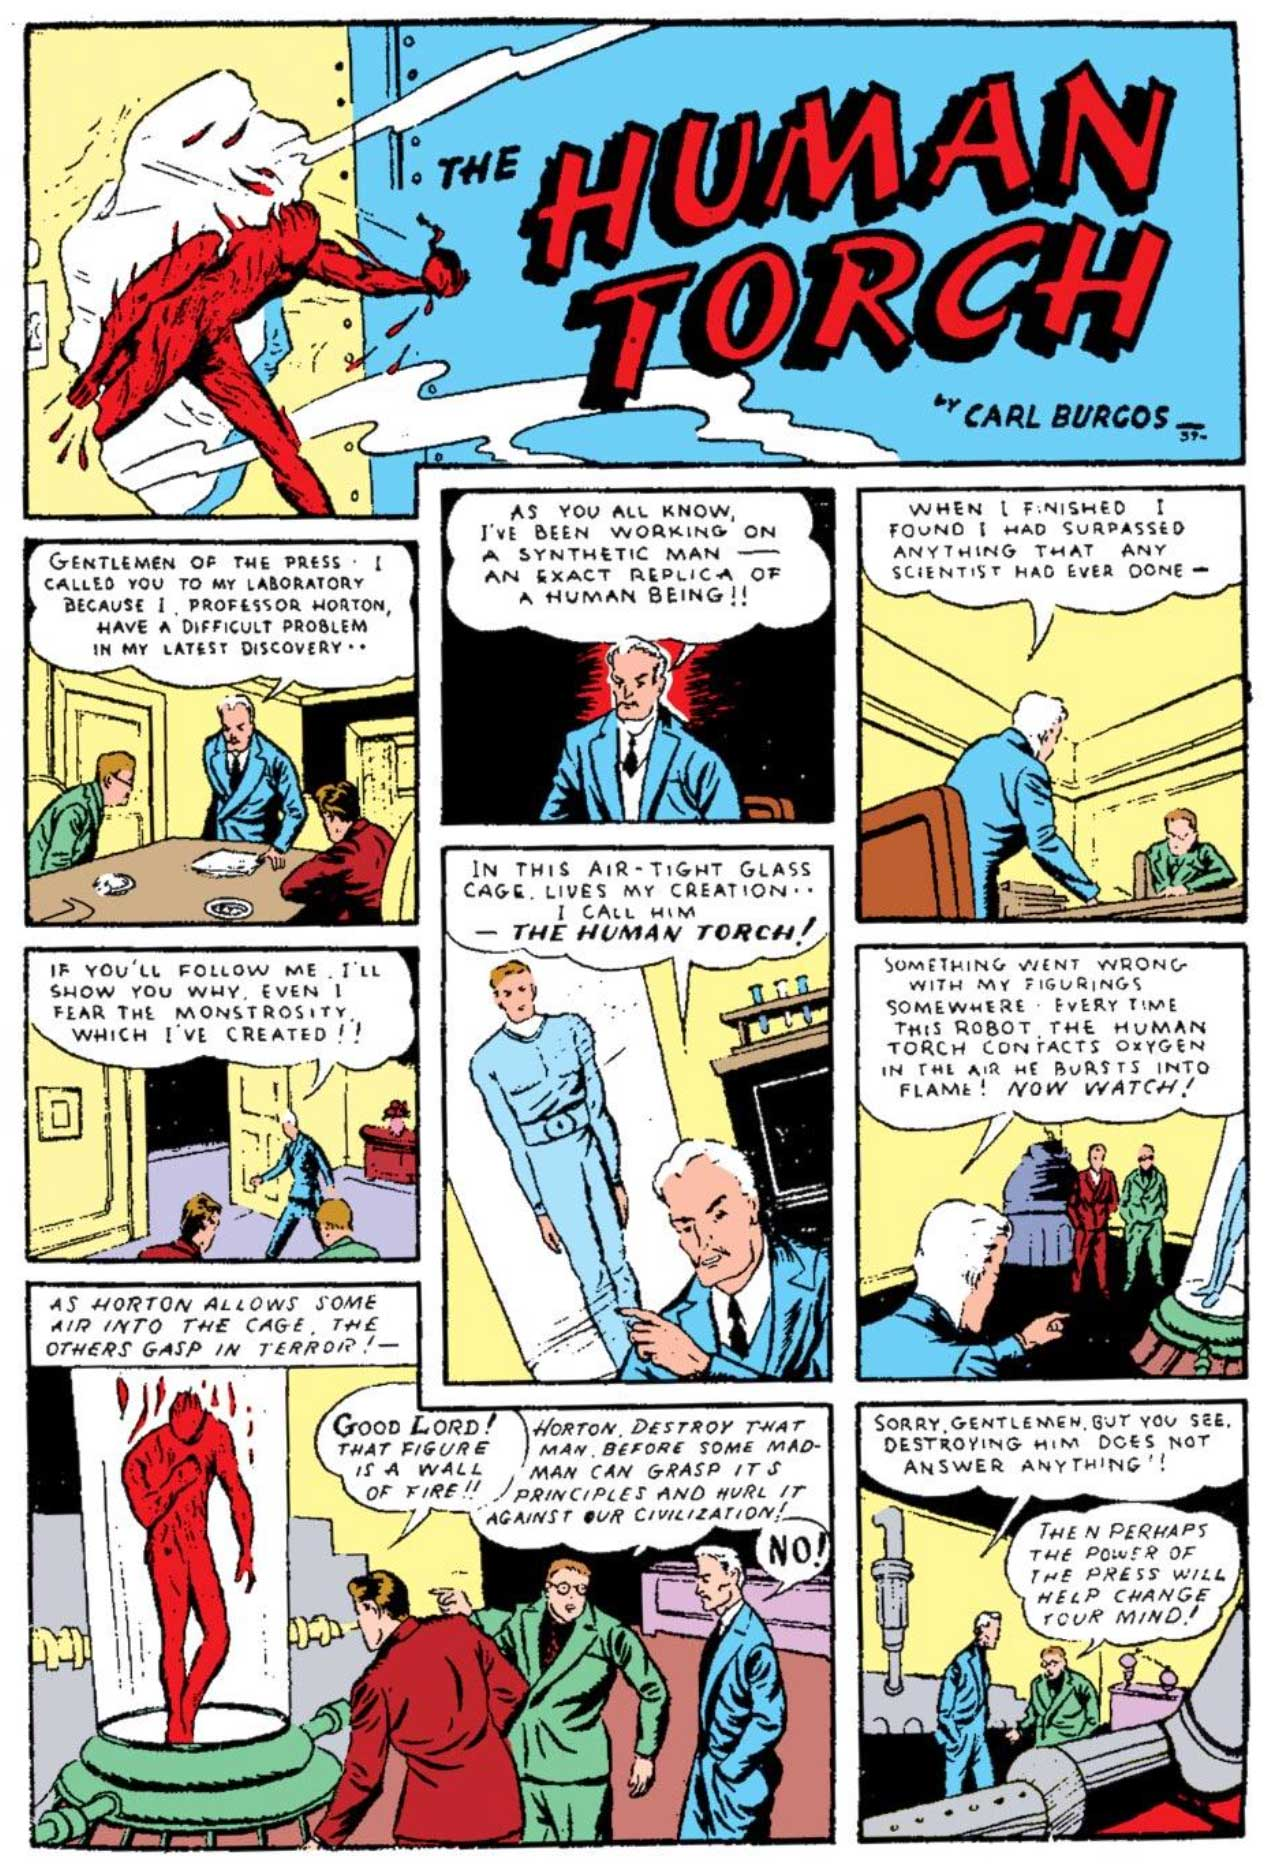 Marvel Comics #1 (1939) featuring The Human Torch by Carl Burgos